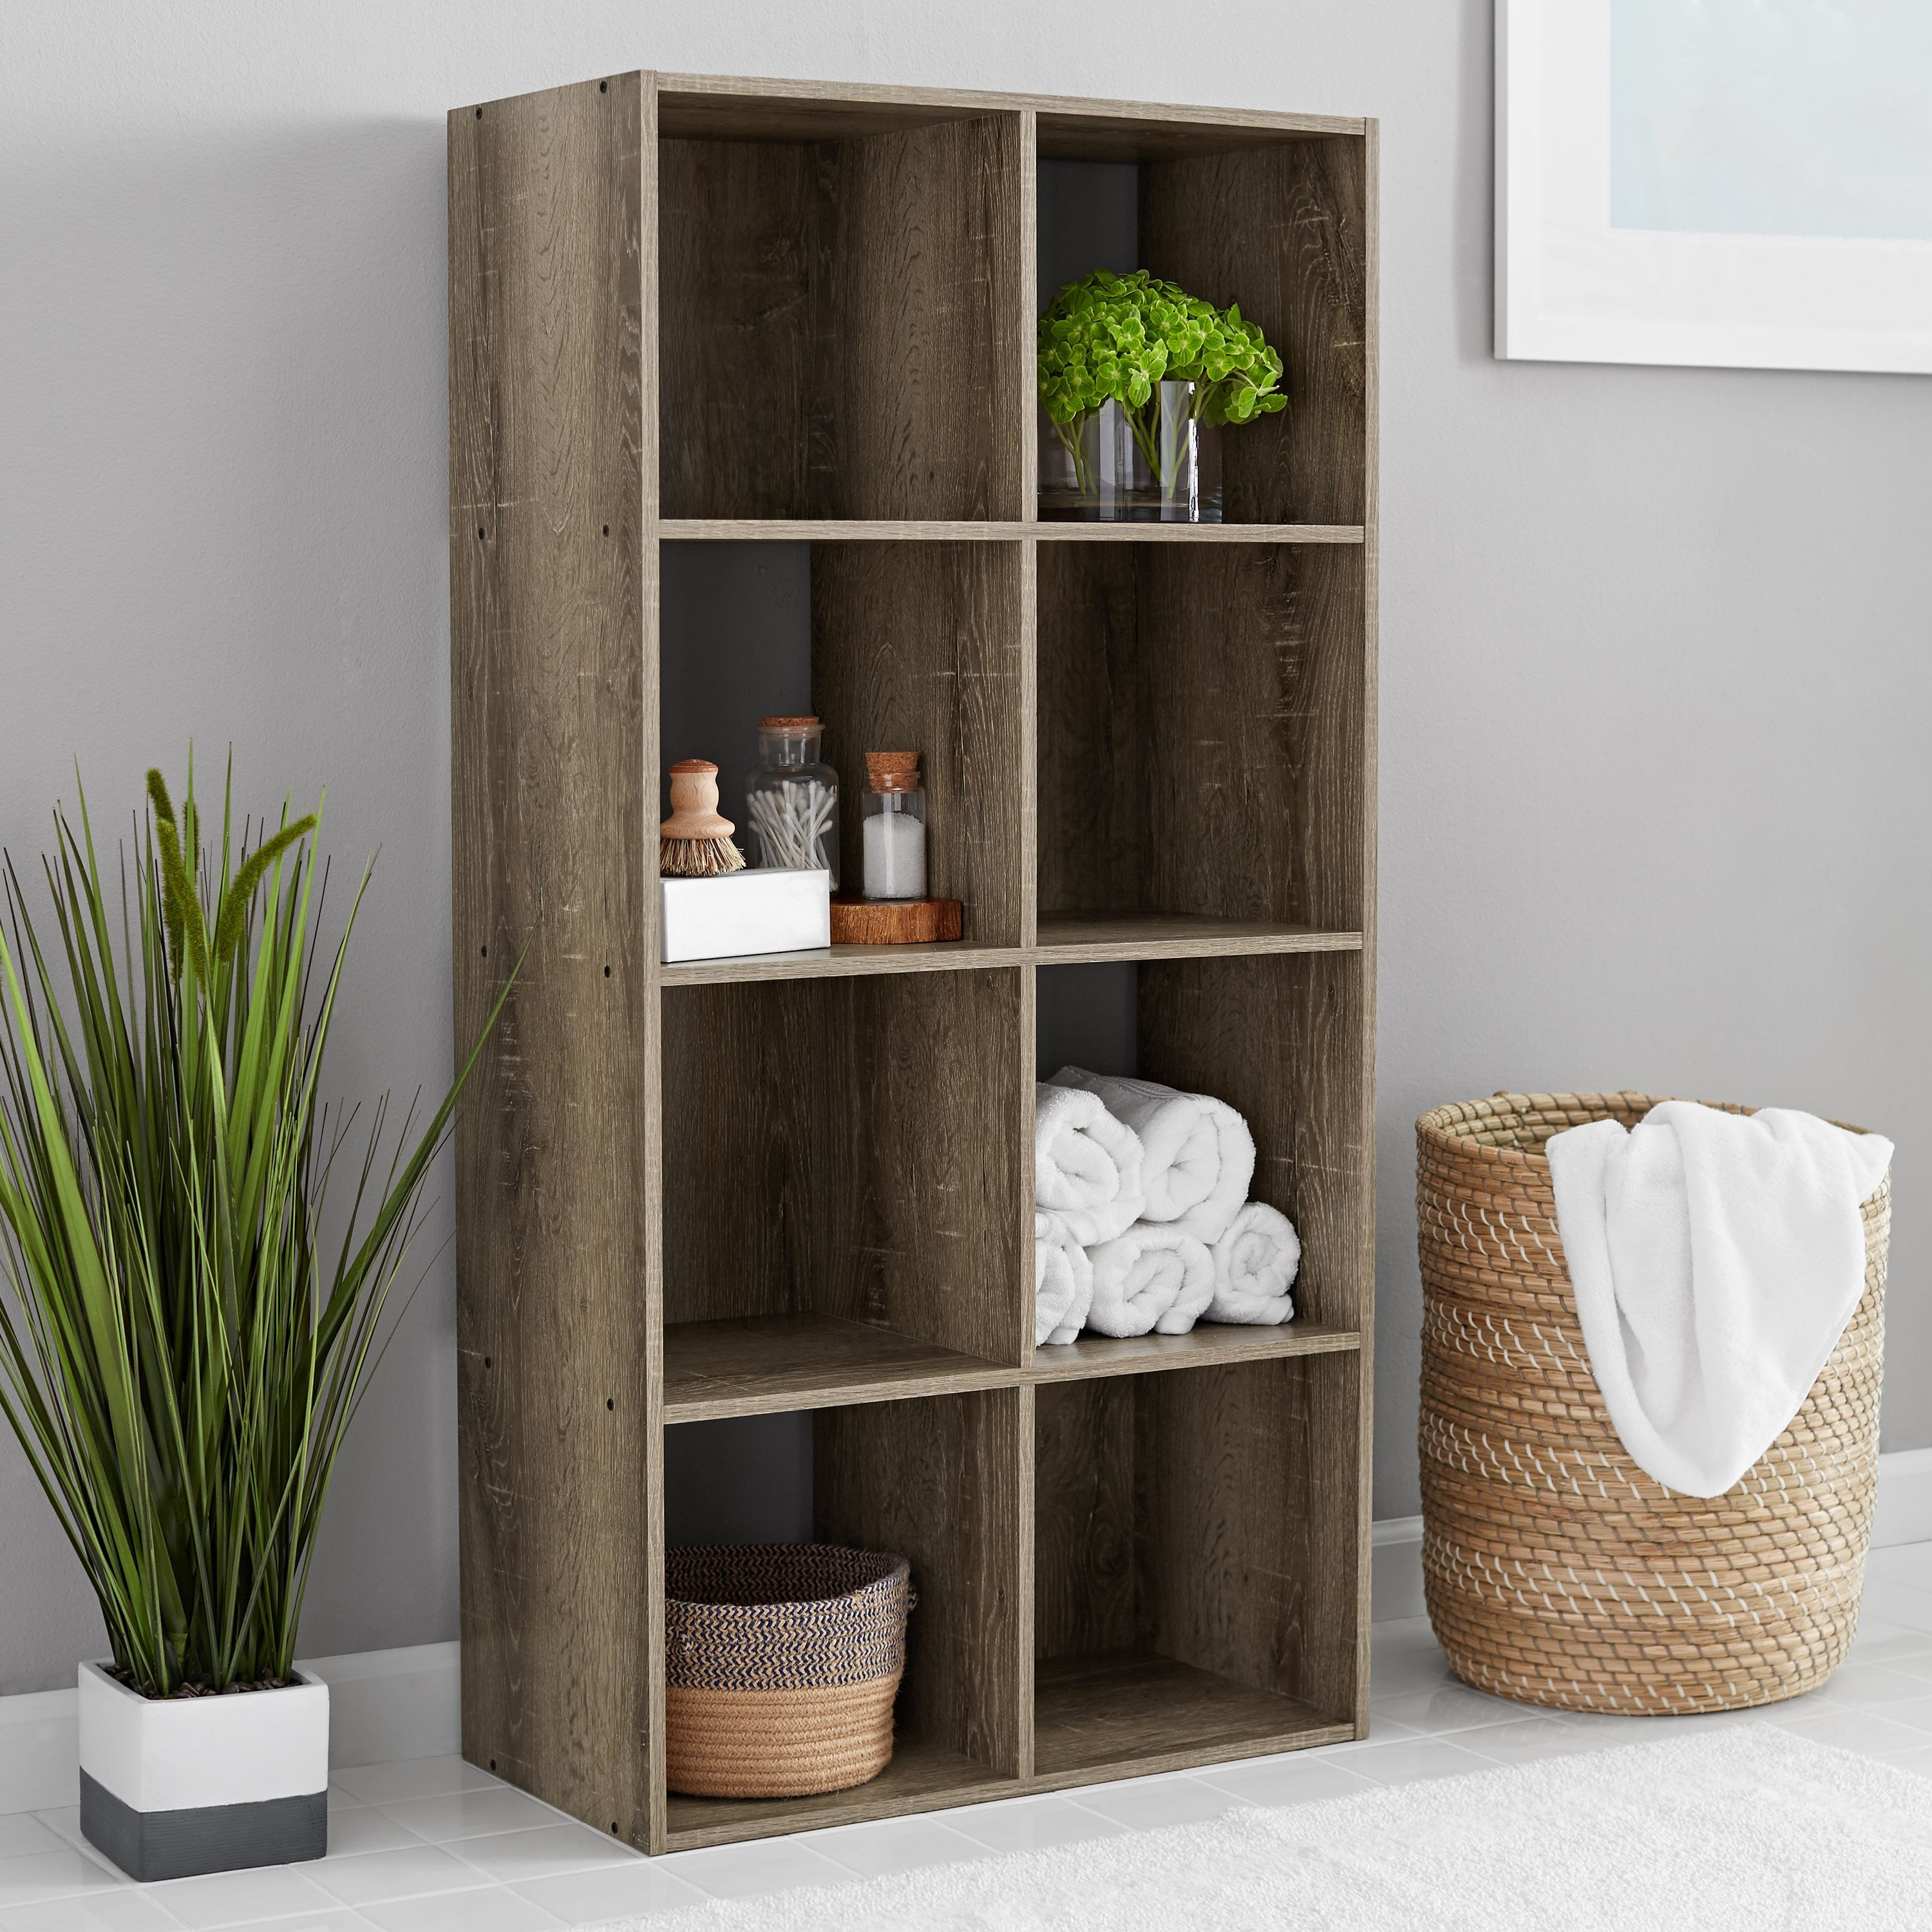 the wooden bookcase